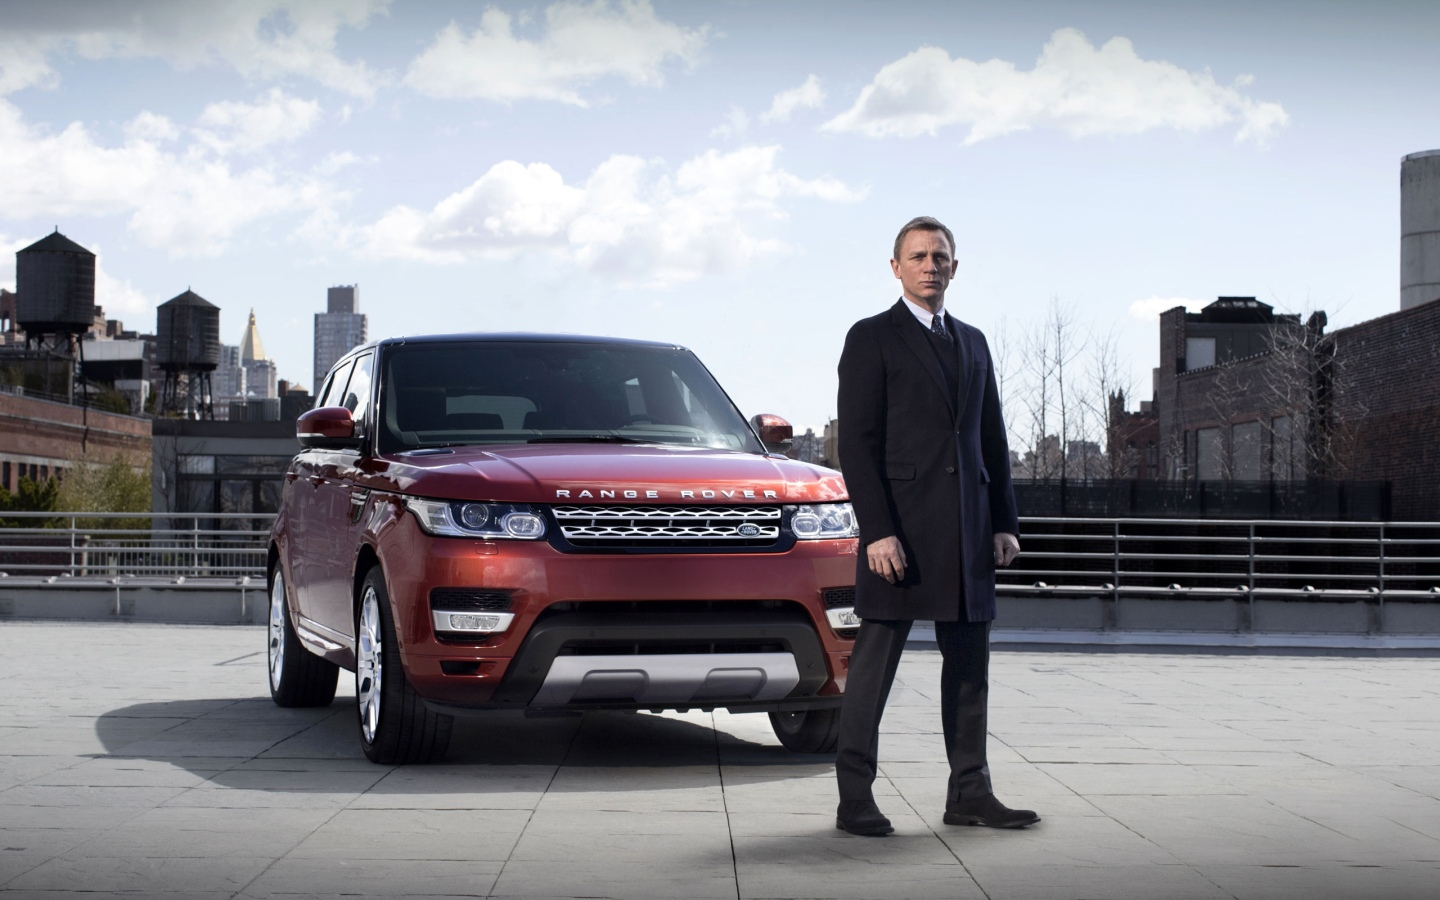 james_bond_range_rover_sport Steelasophical